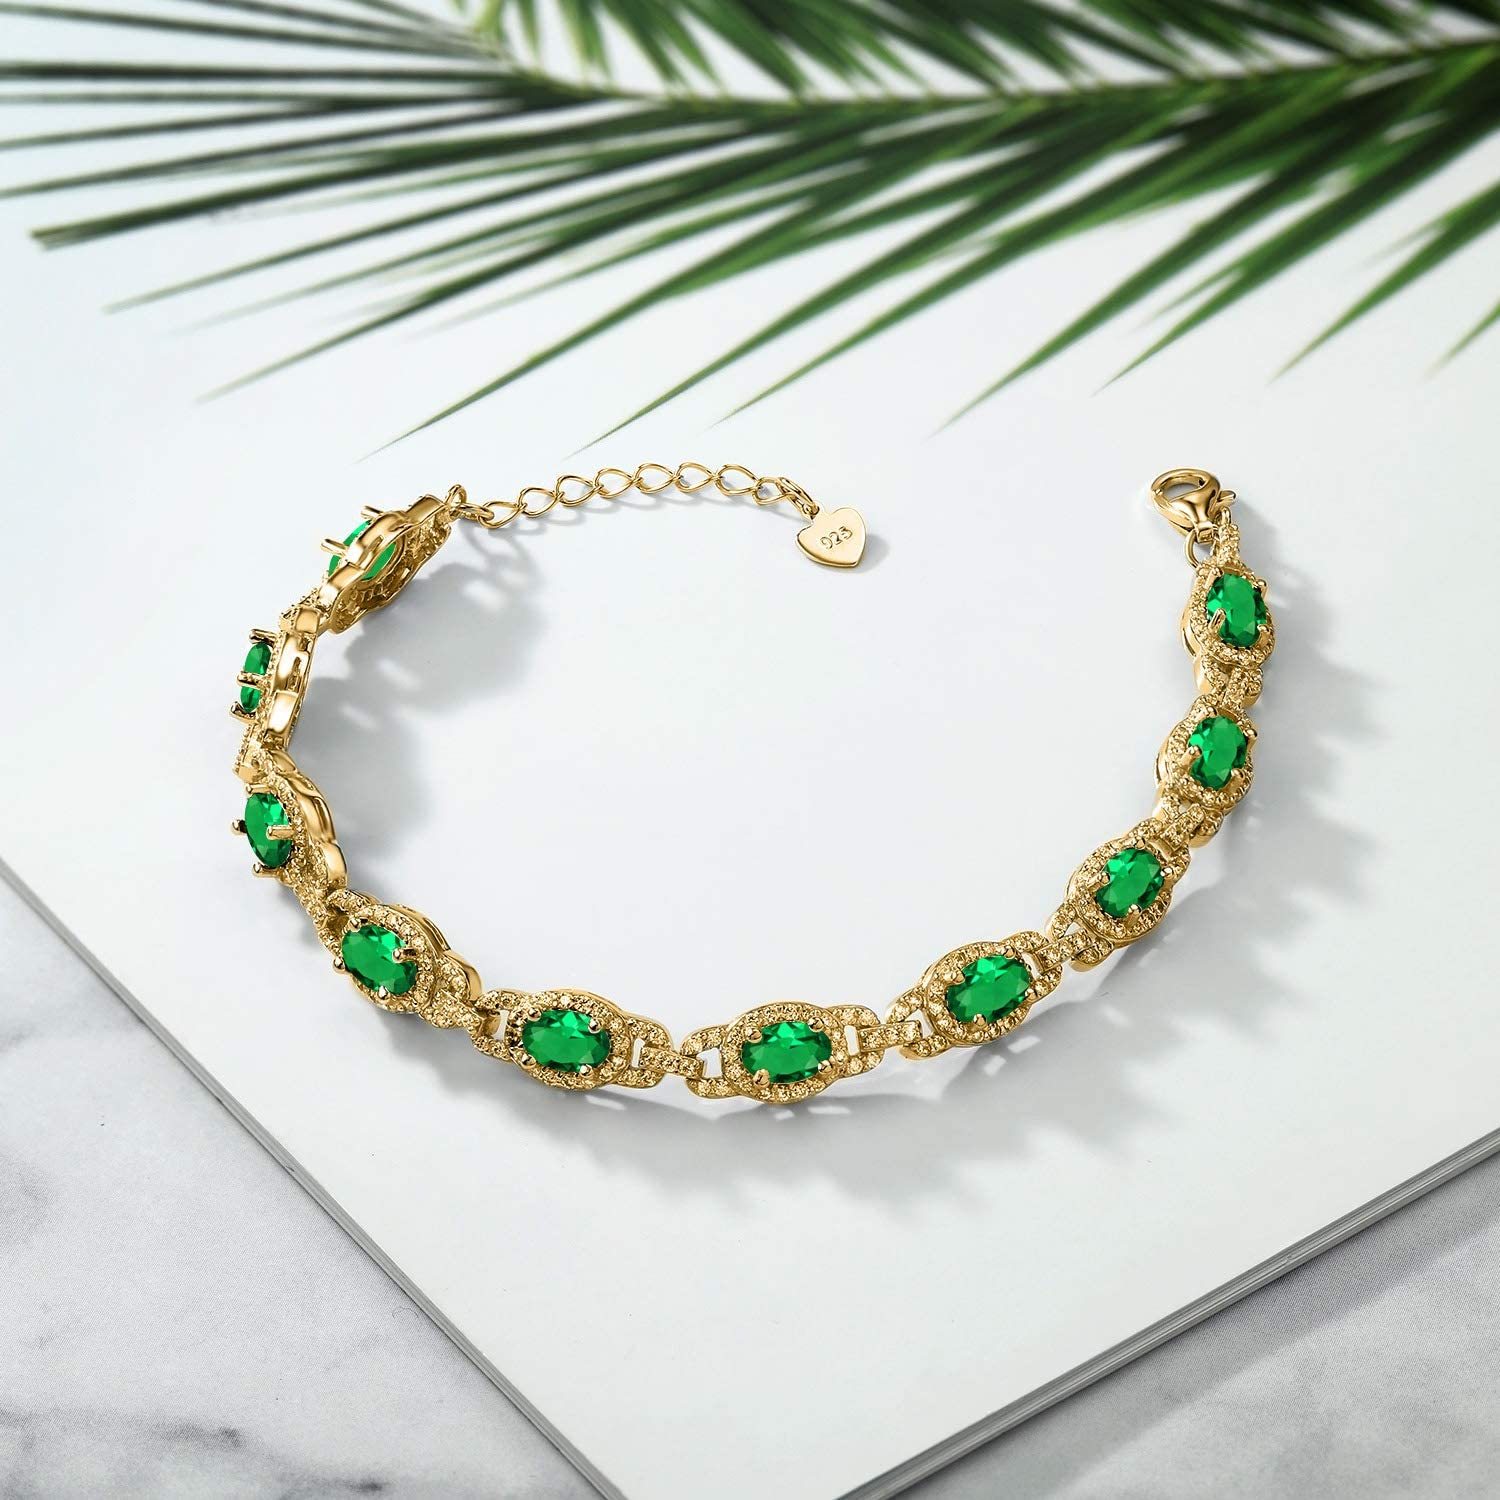 Gem Stone King 8.00 Ct Oval Green Simulated Emerald 18K Yellow Gold Plated Silver 7 Inch Bracelet With 1 Inch Extender